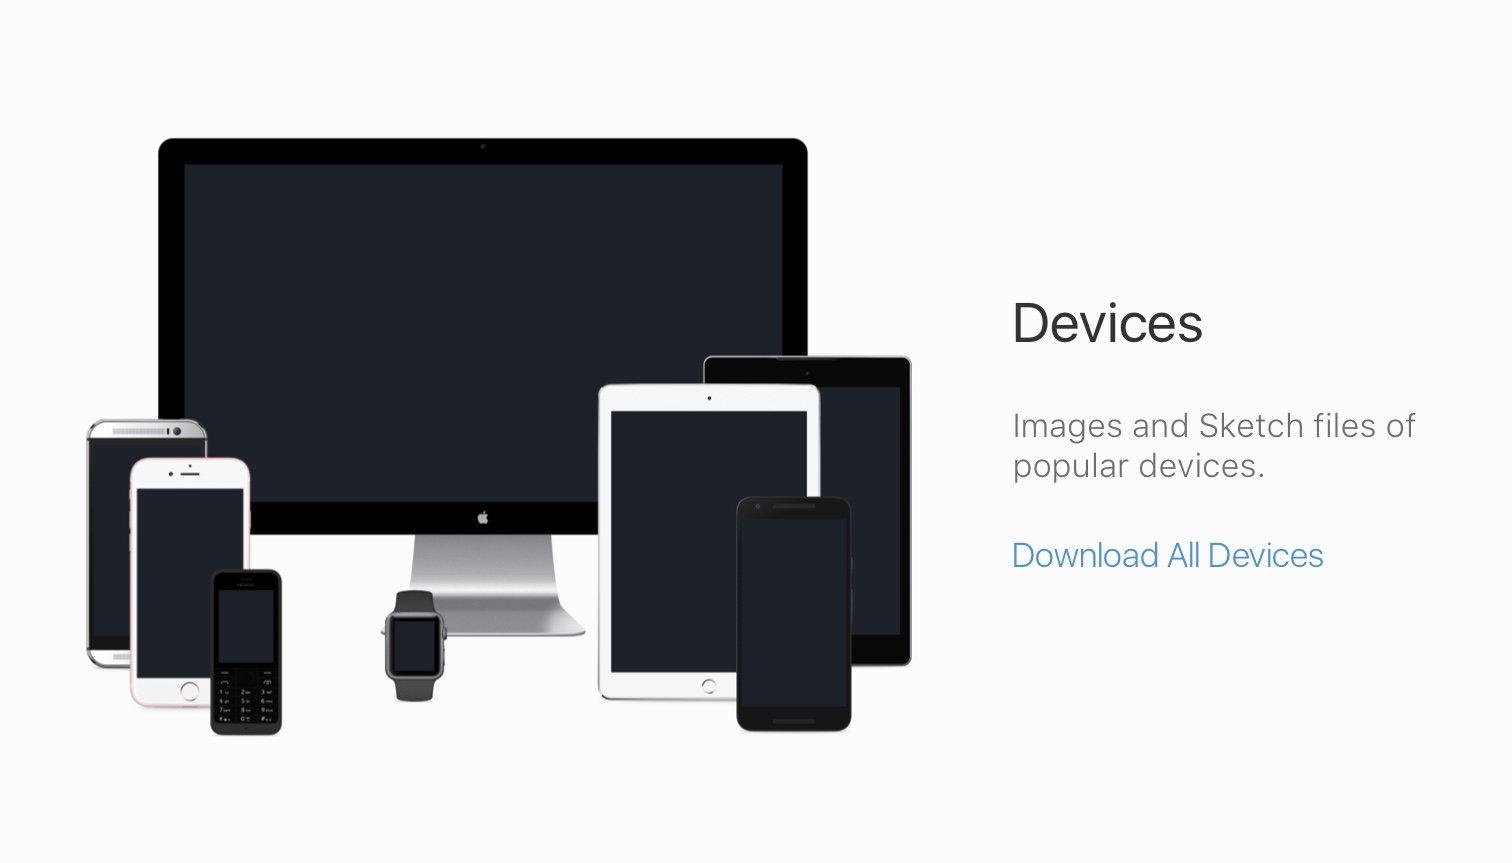 Devices Mockup for Png and Sketch files for All modern devices from FB